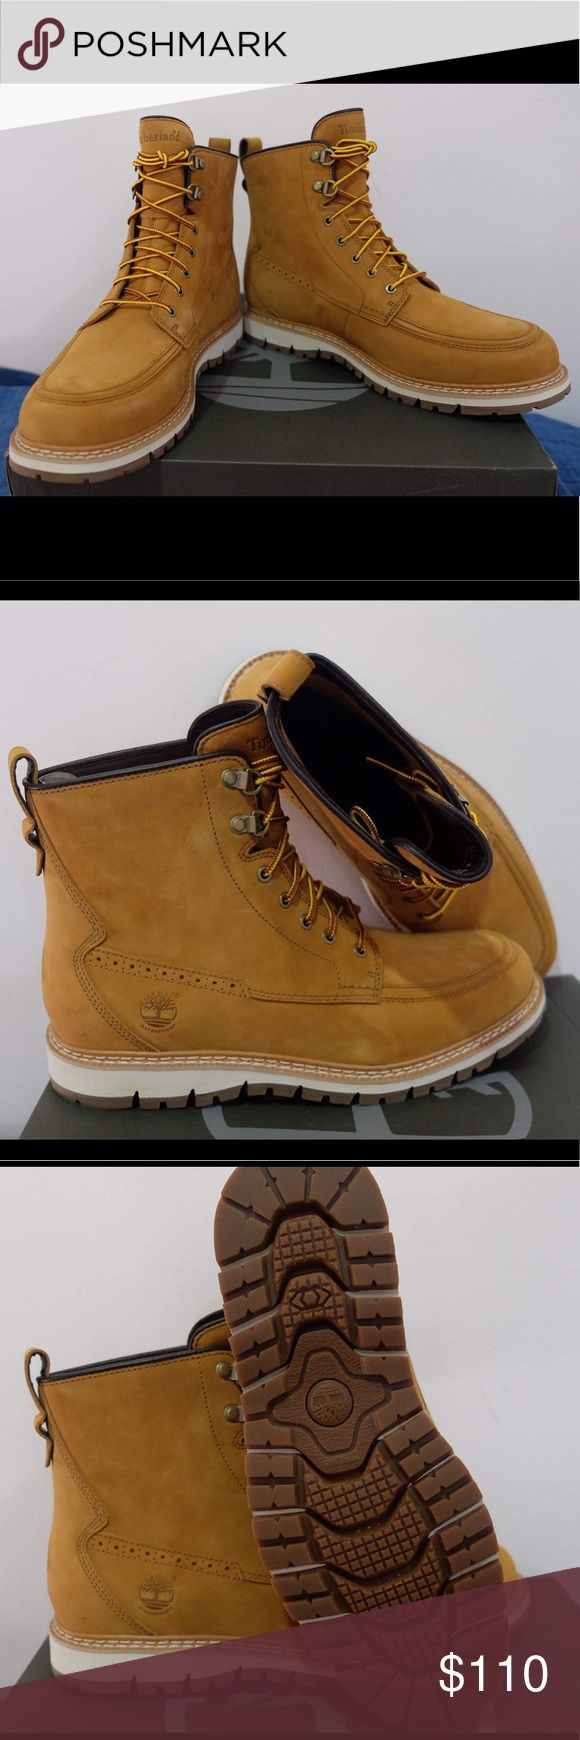 NIB! Men Timberland Waterproof Boots - size 9 NIB! Men Timberland Waterproof Boots - size 9 Timberland Shoes Boots